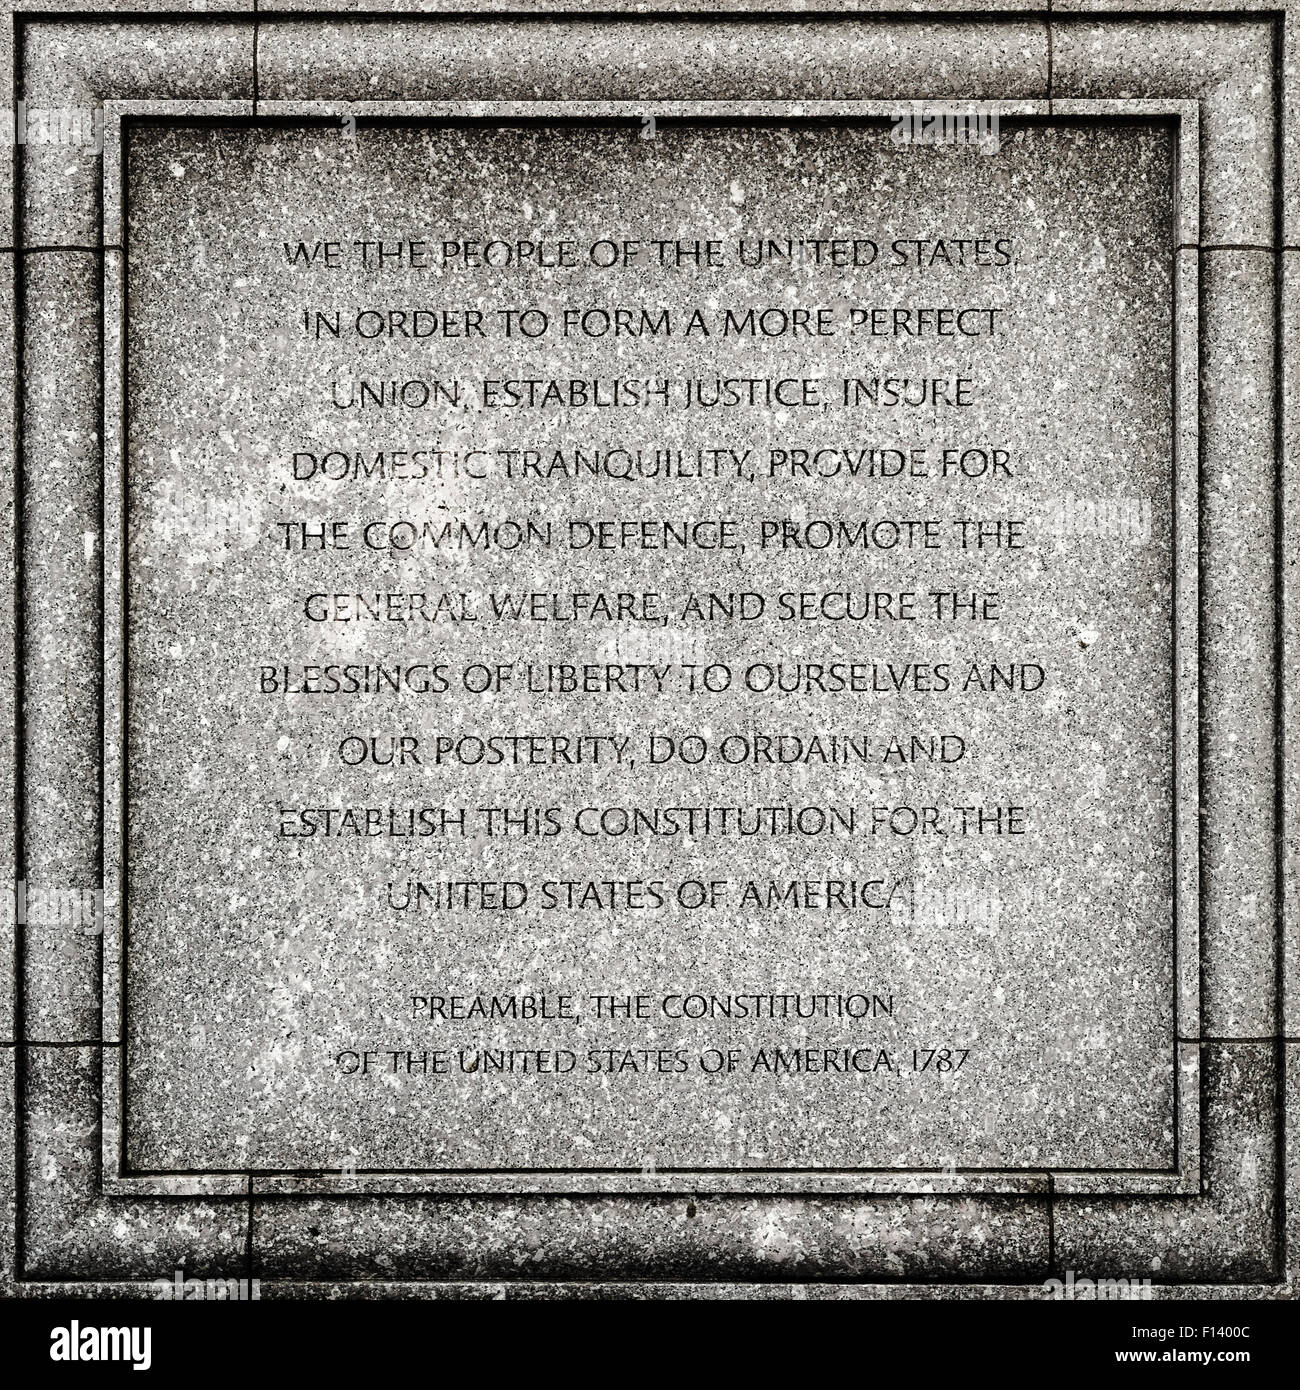 Outdoor detail of the John Joseph Moakley United States Courthouse in Boston - Preamble of the USA constitution - Stock Image